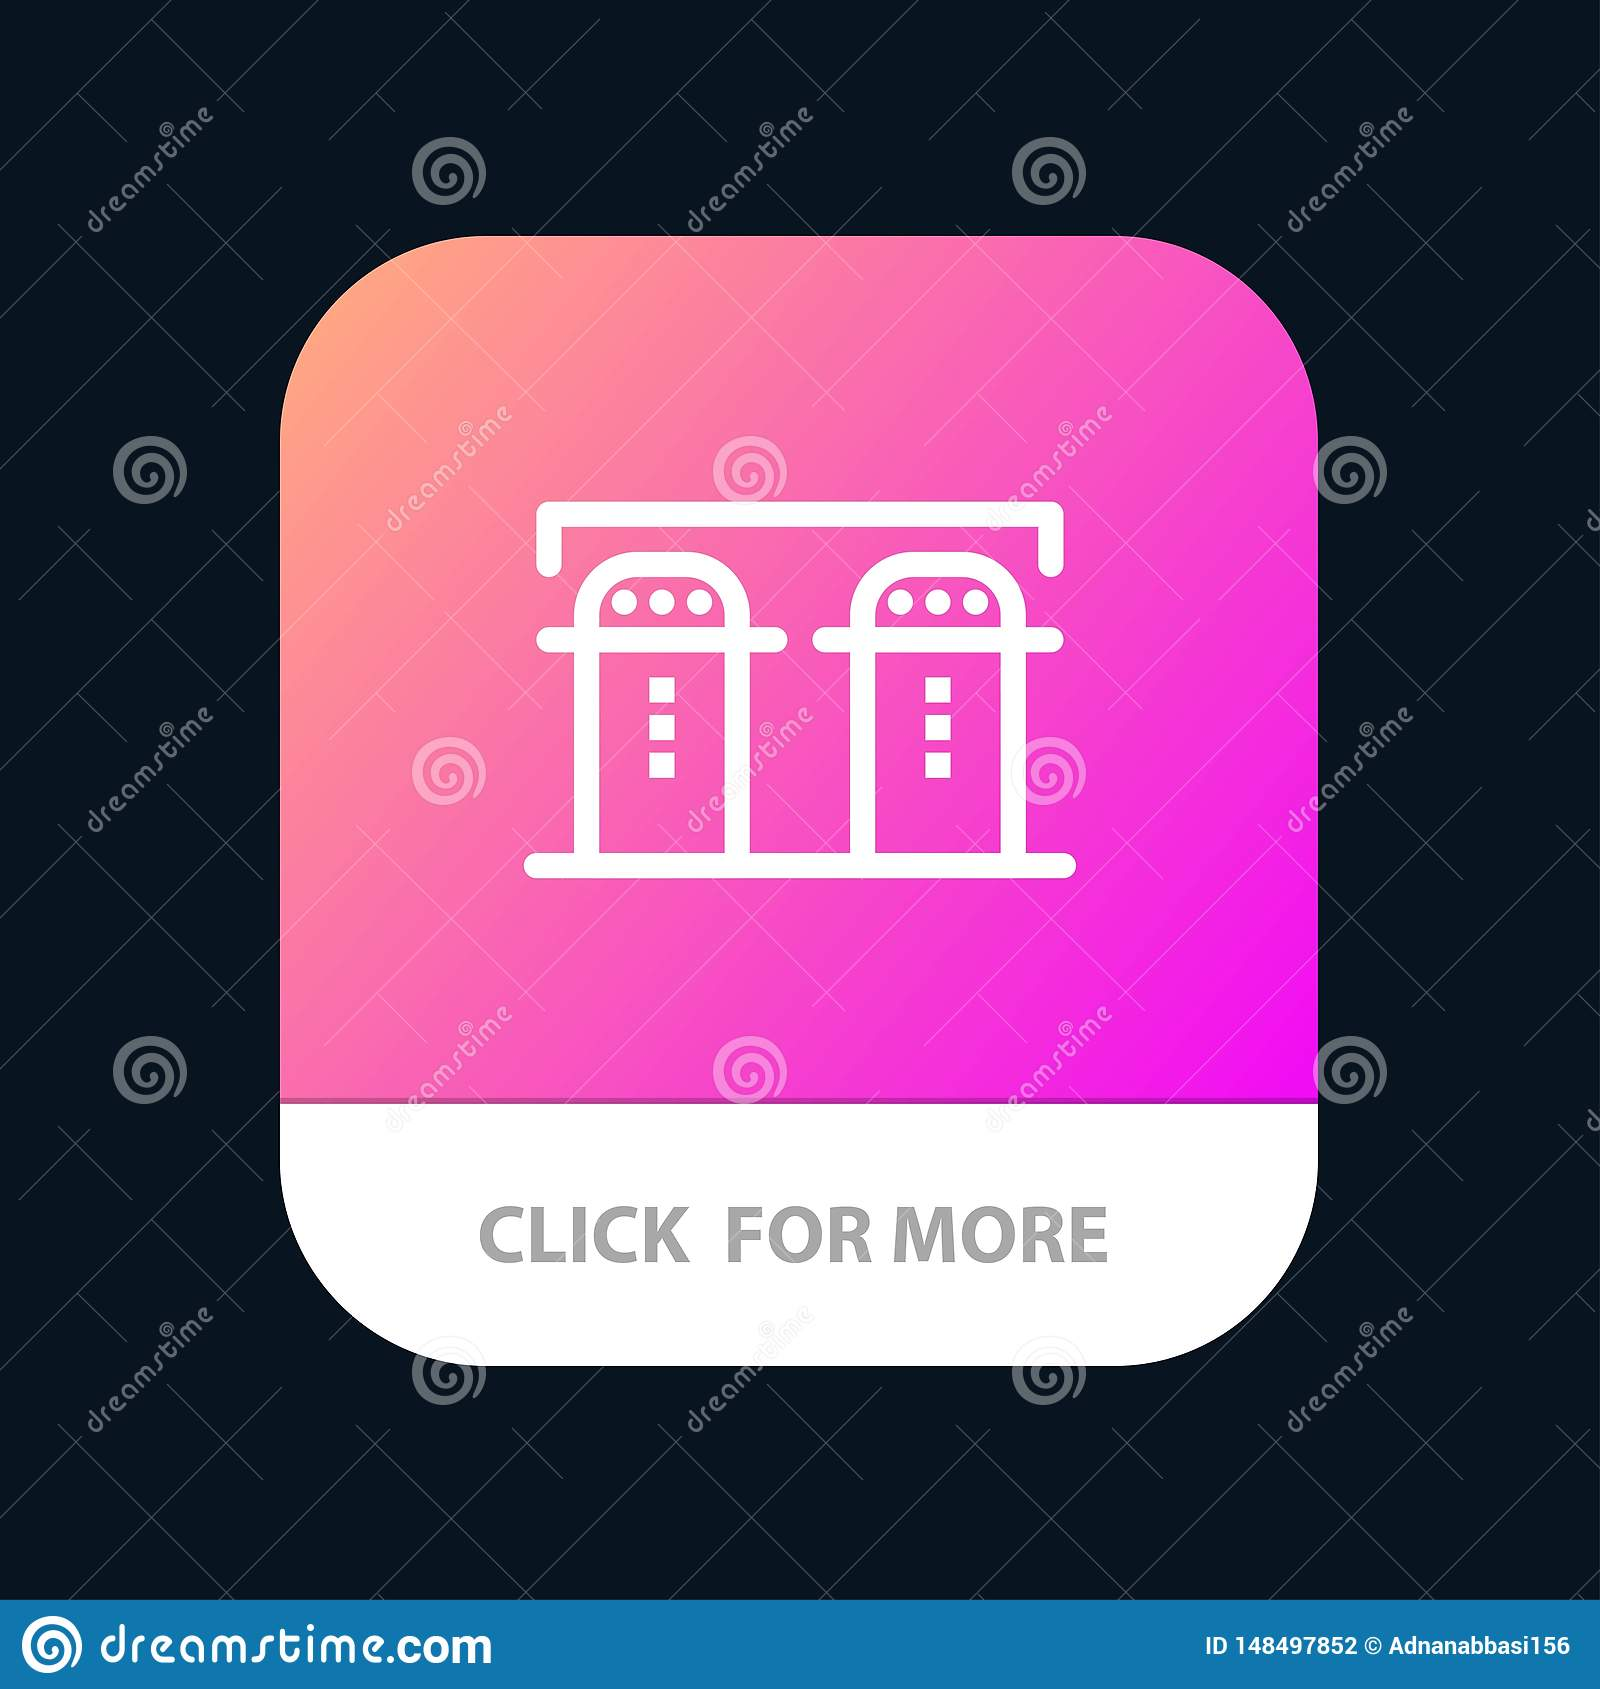 Salt Paper Bottle Spices Mobile App Button Android And Ios Line Version Stock Vector Illustration Of Cutlery Boat 148497852